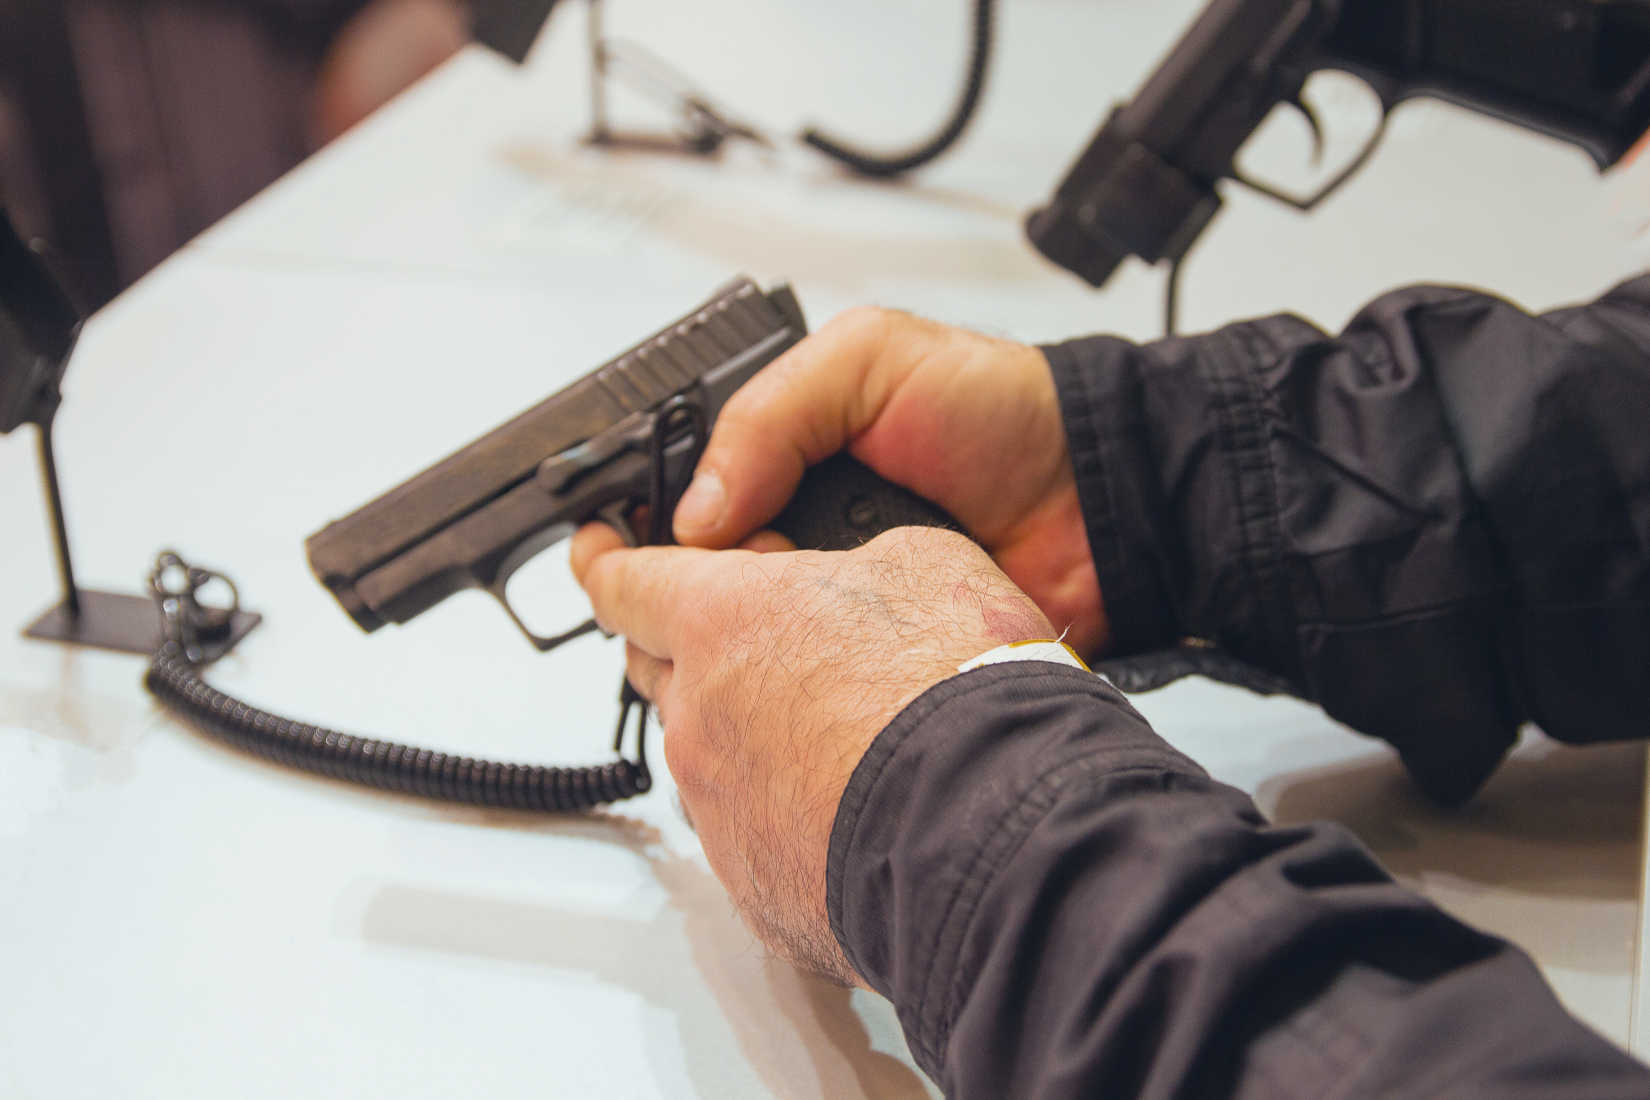 Is Virginia's One-Handgun-a-Month Law Constitutional?